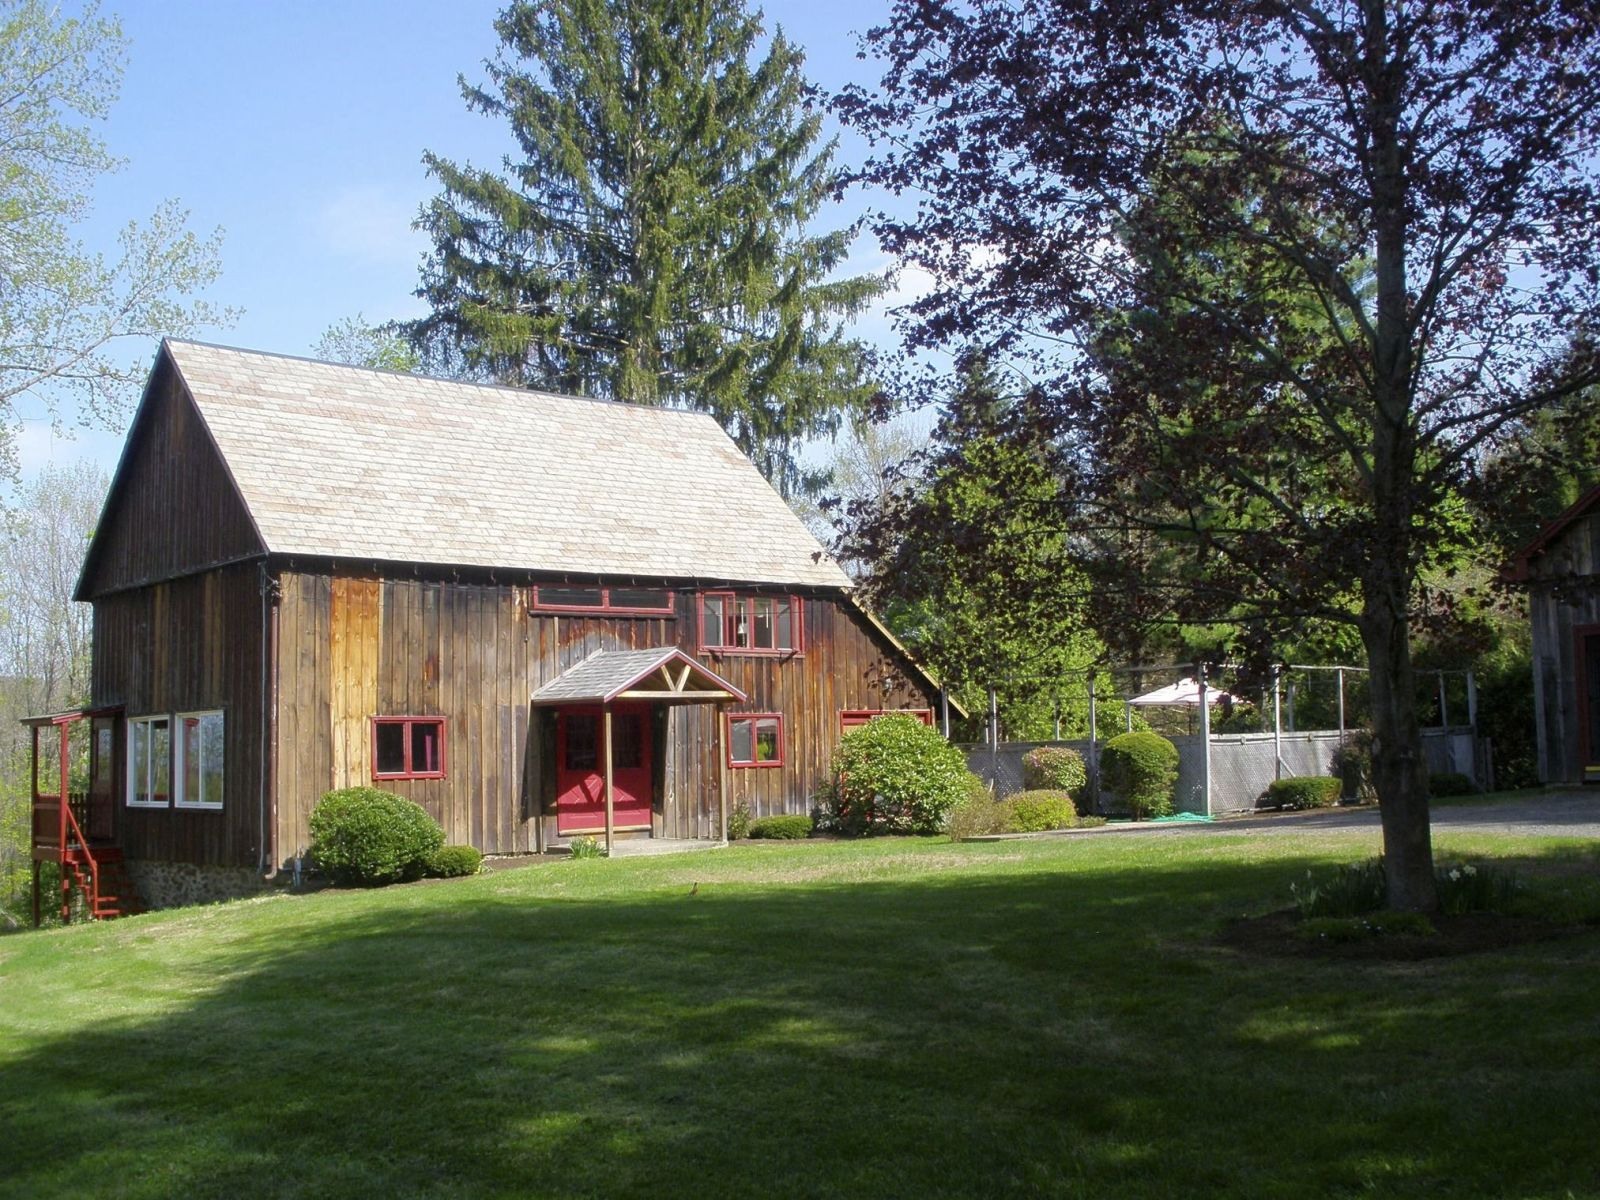 6 barn homes for sale across america barns for sale for Homes in usa for sale